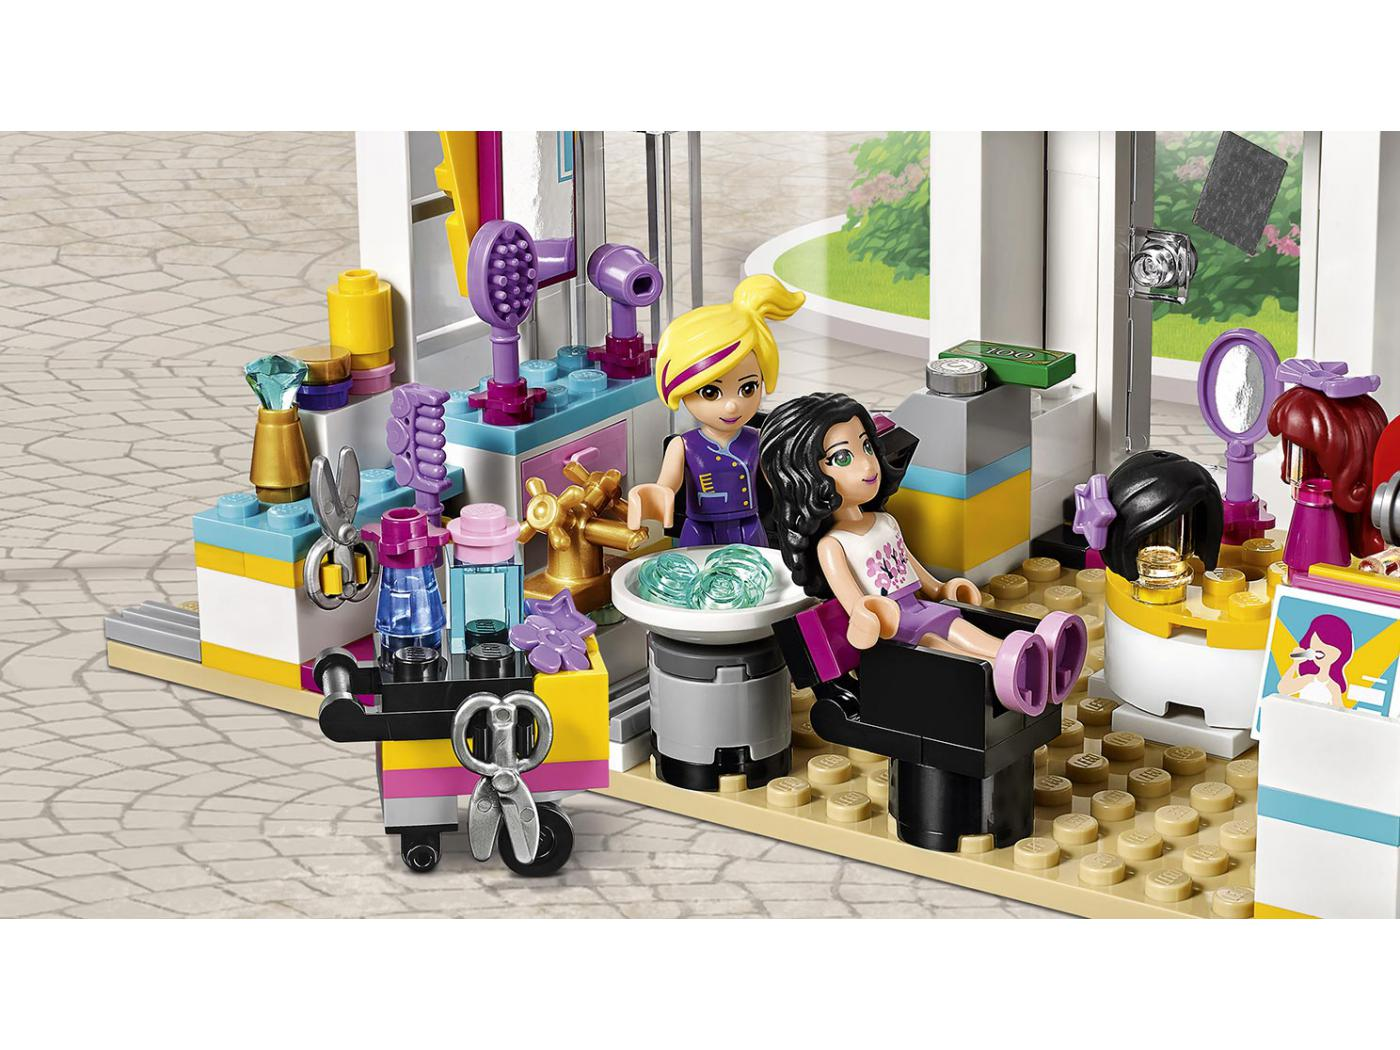 Lego le salon de coiffure d 39 heartlake city for Lego friends salon de coiffure